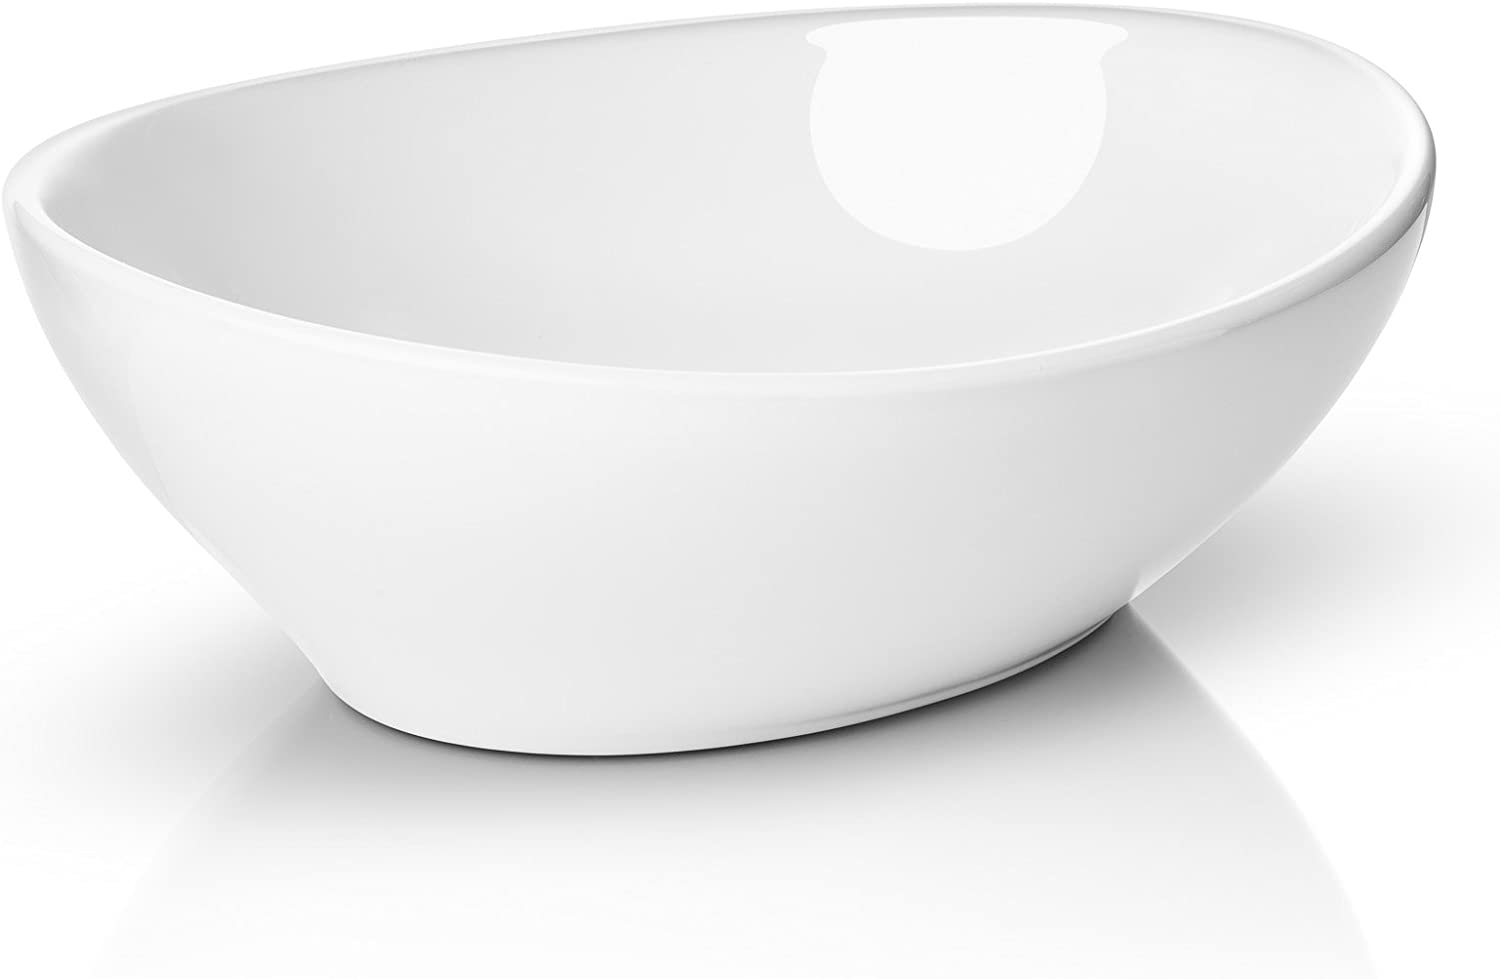 Best above-the-counter sink: Miligore Egg Shape Vanity Bowl